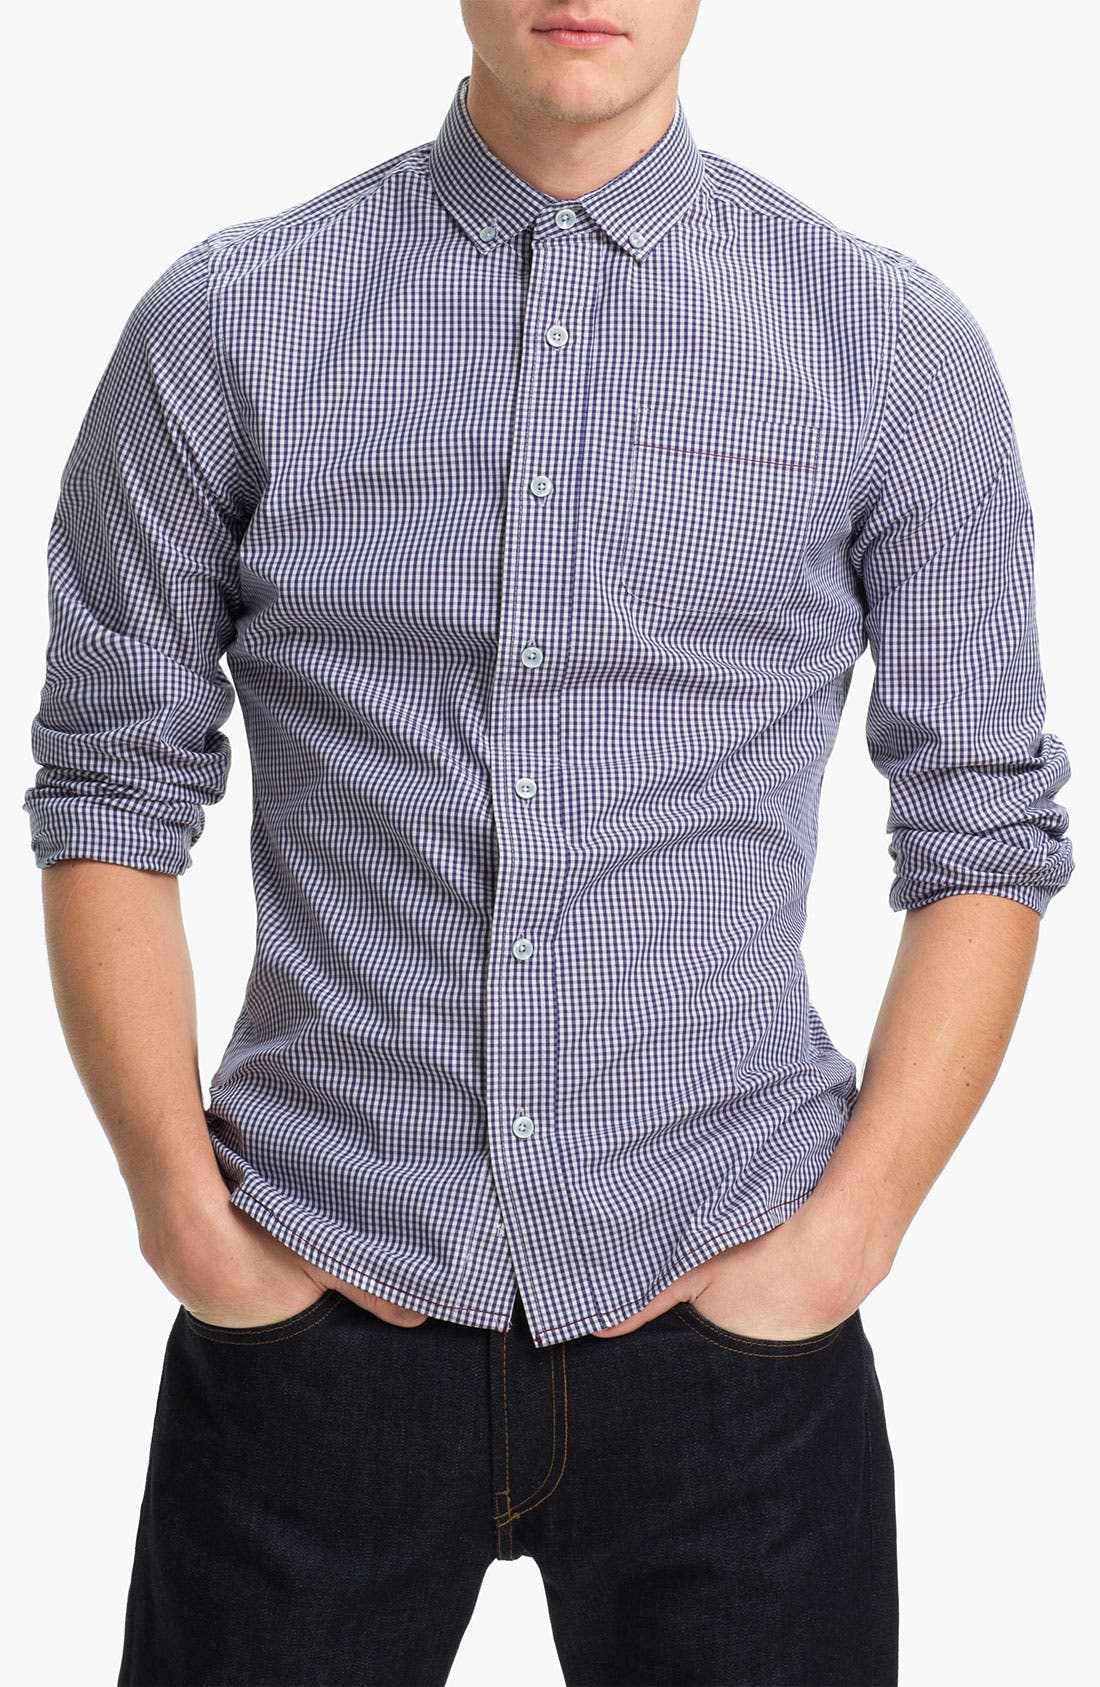 Main Image - Descendant of Thieves Gingham Woven Shirt